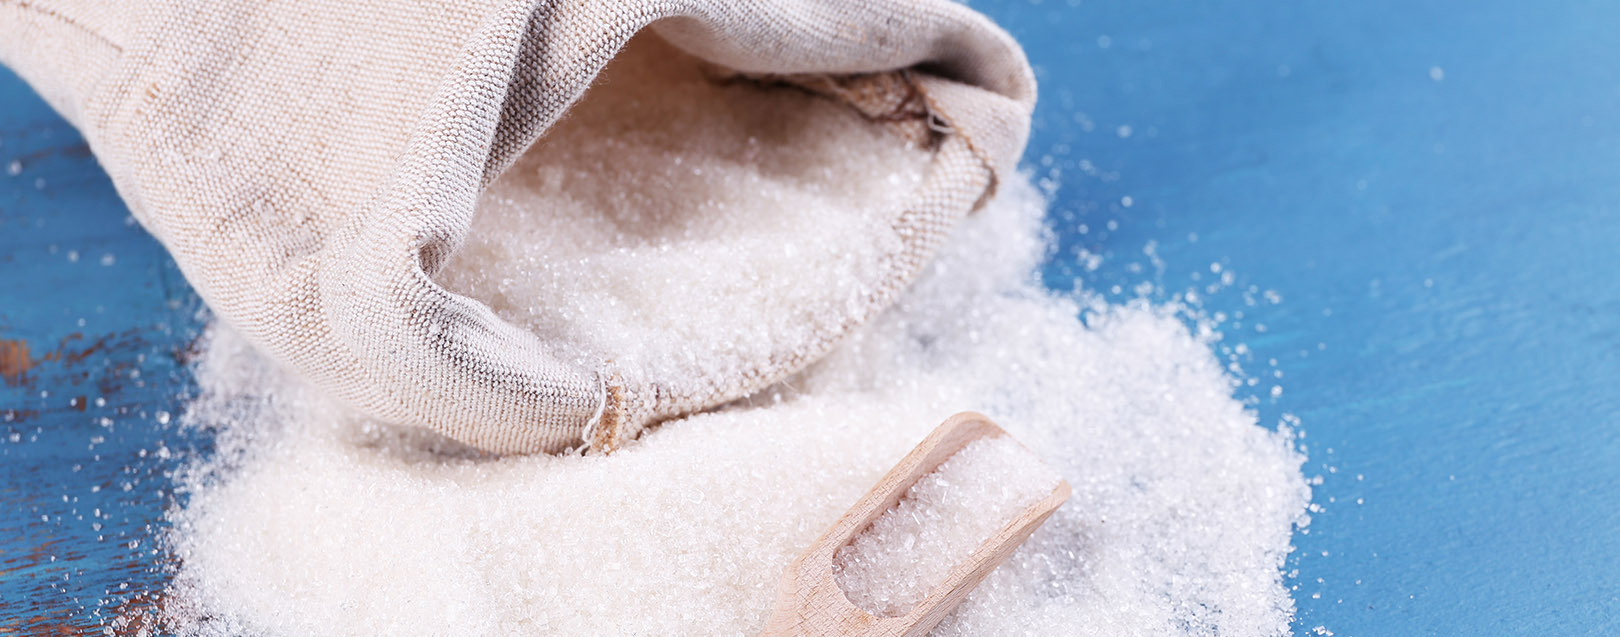 Sugar prices likely to go up due to supply shortage